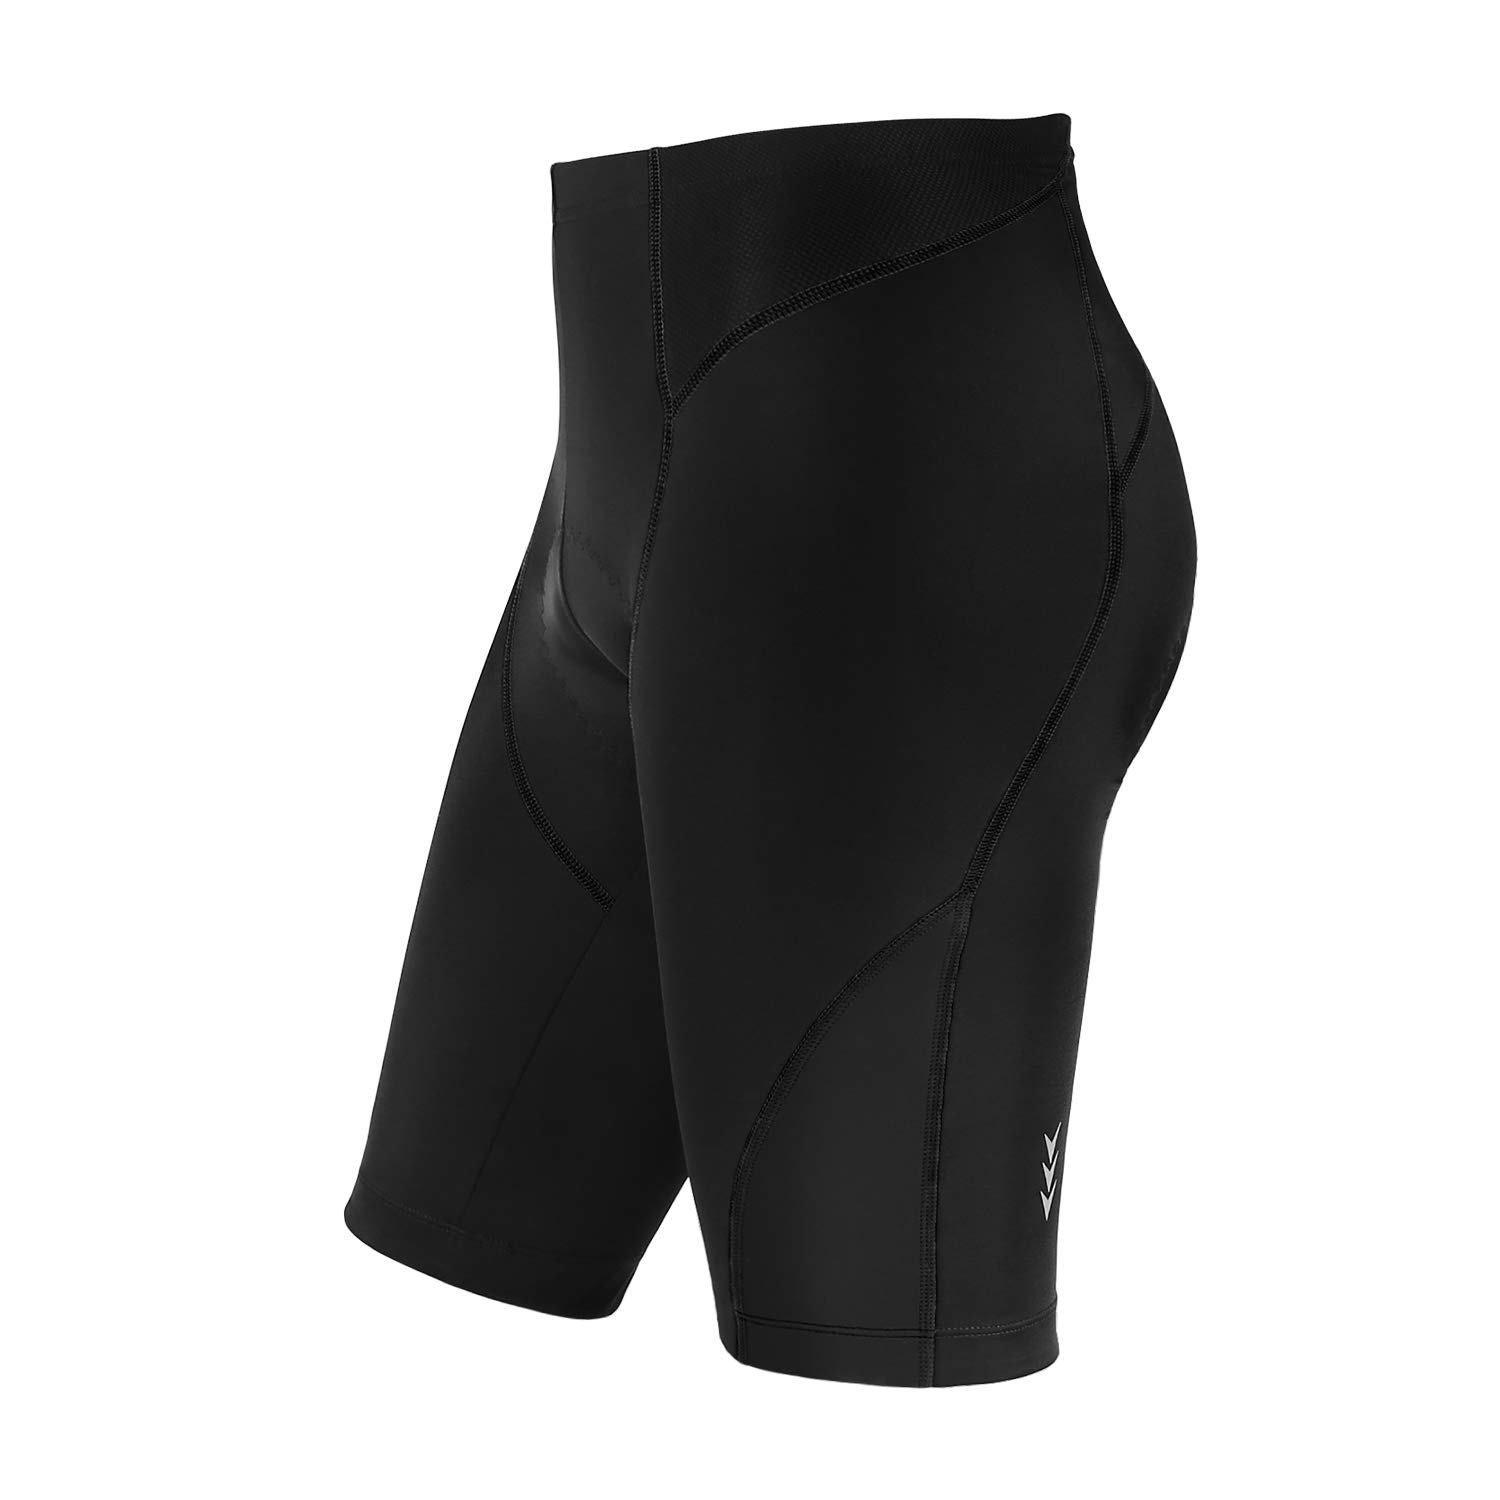 INBIKE Mens Bike Shorts with 3D Padding Anti-Slip|Breathable|Quick Dry Cycling Bicycle Half Pants